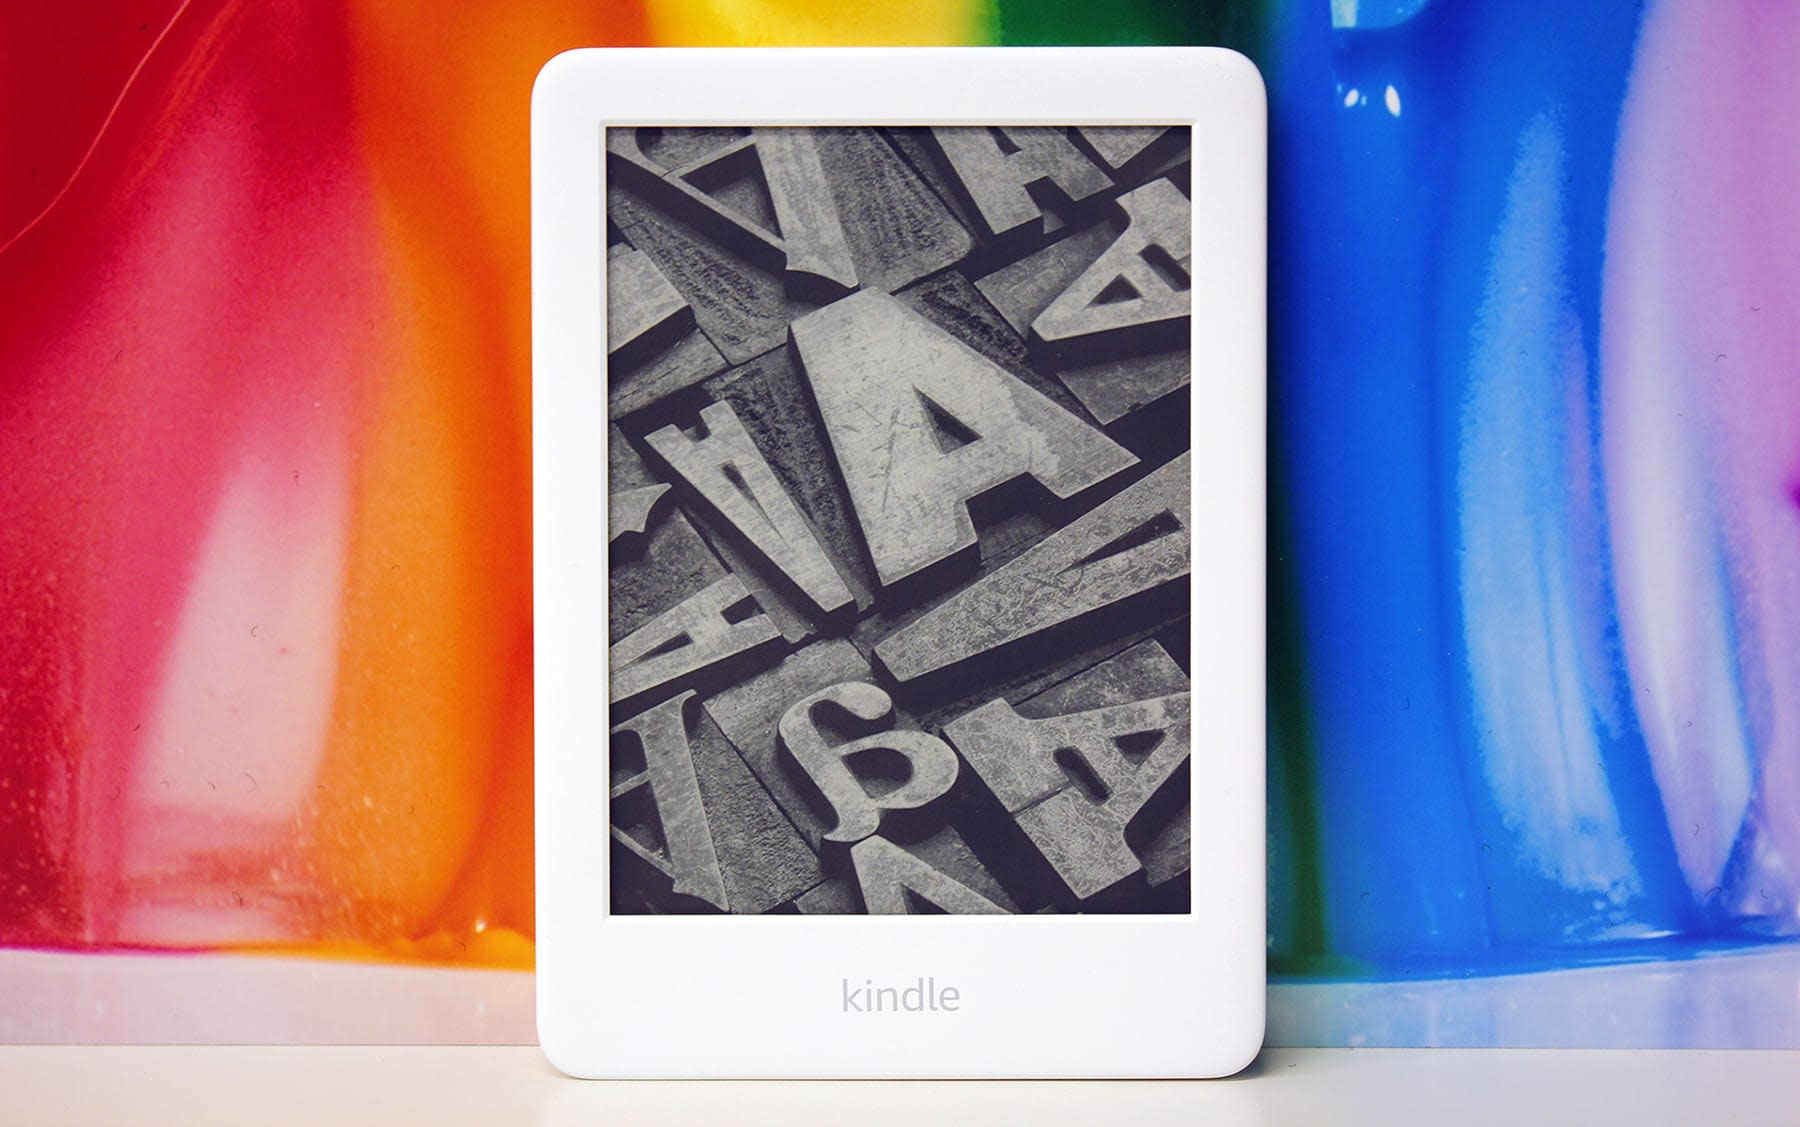 Amazon Kindle review (2019): The Paperwhite gets a run for its money